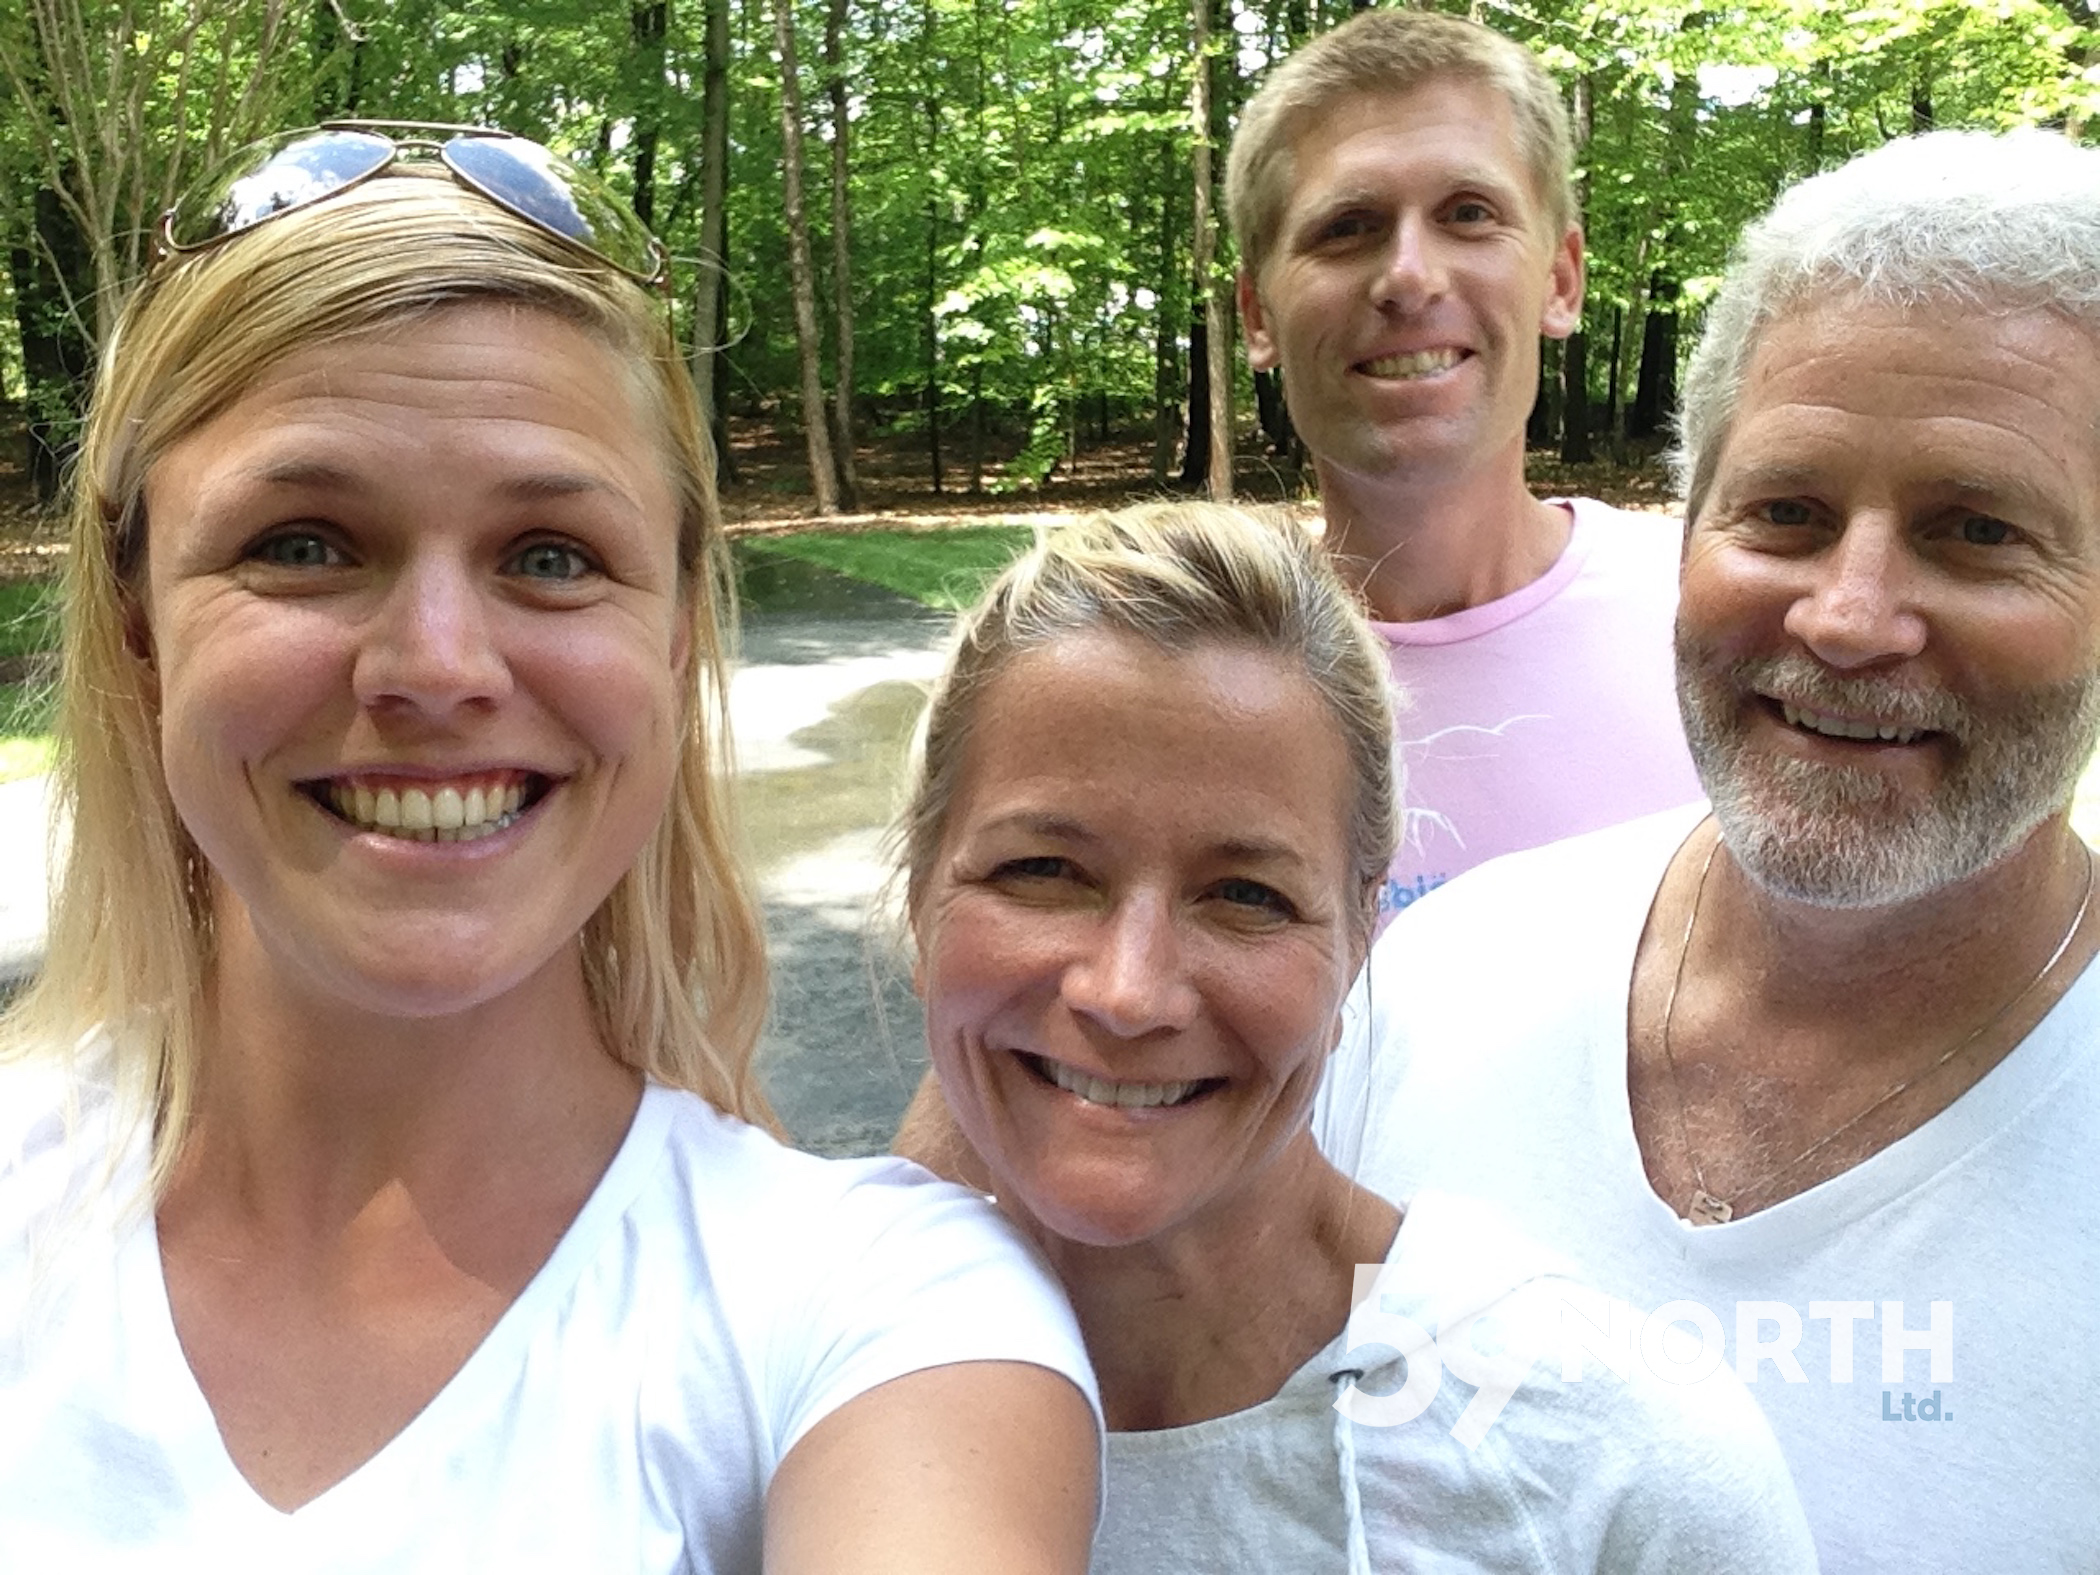 Visiting our friends Tom & Darlene in VA, such a nice mini-vacation! April 2016